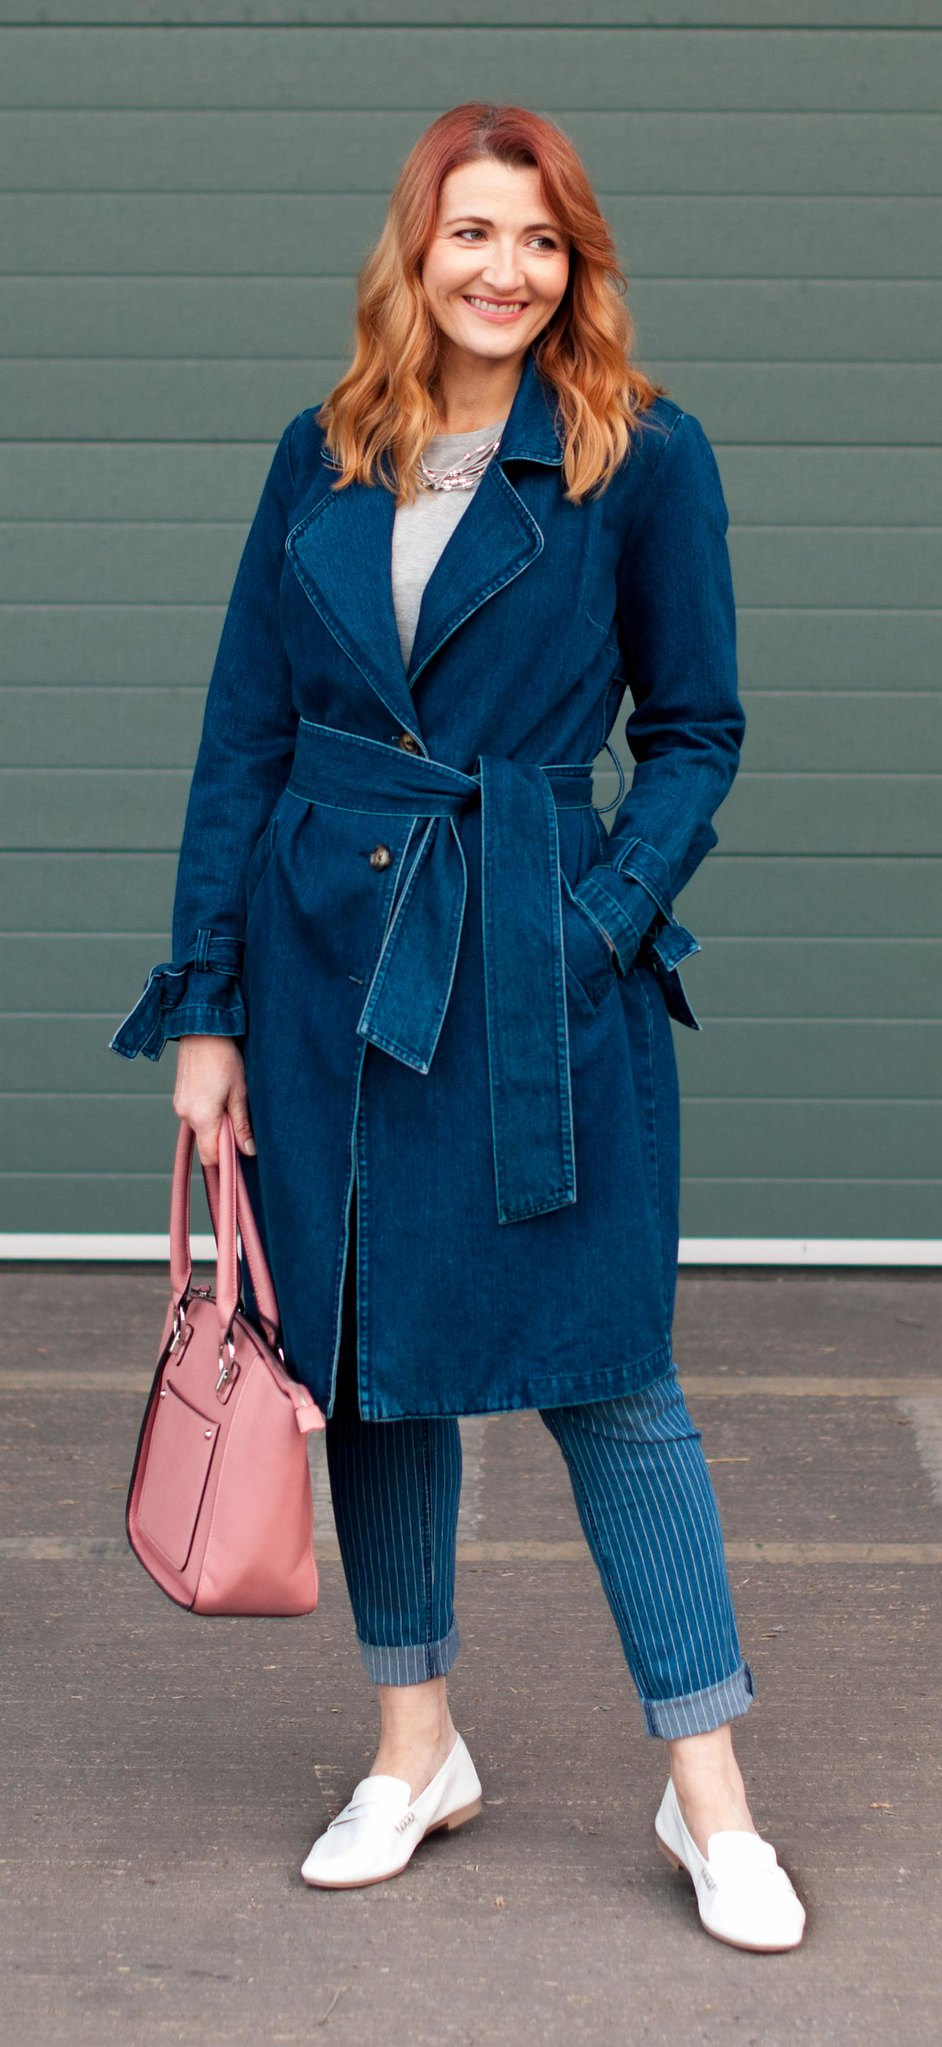 Winter to spring transitional outfit - Denim trench coat, pinstripe boyfriend jeans, white loafers, pink tote bag | Not Dressed As Lamb, over 40 style